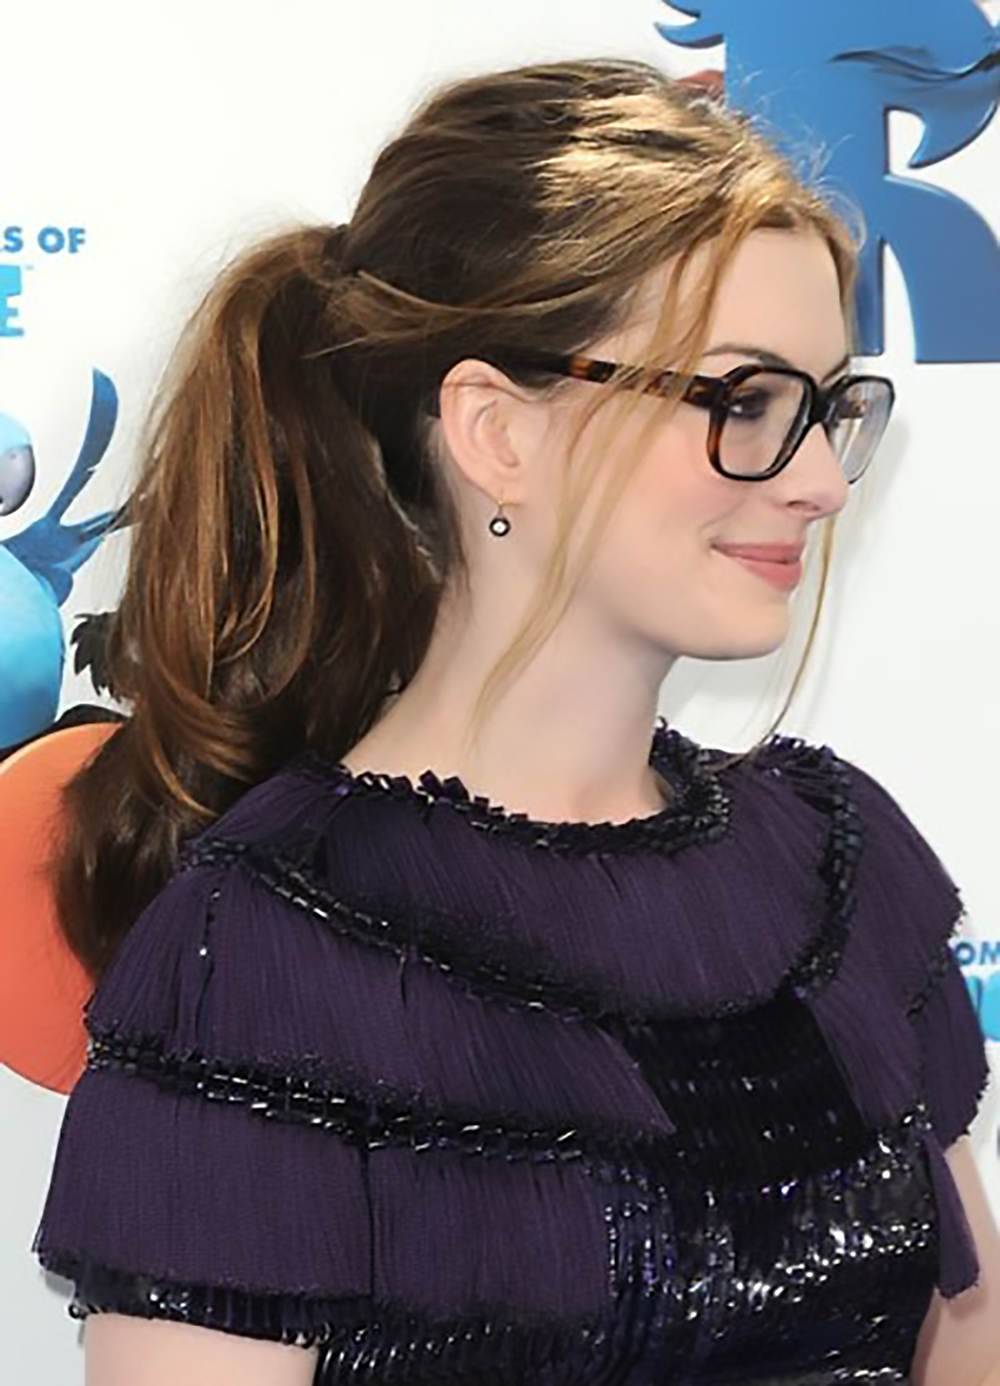 picture-insights blogspot.co.uk anne hathaway 1500.jpg